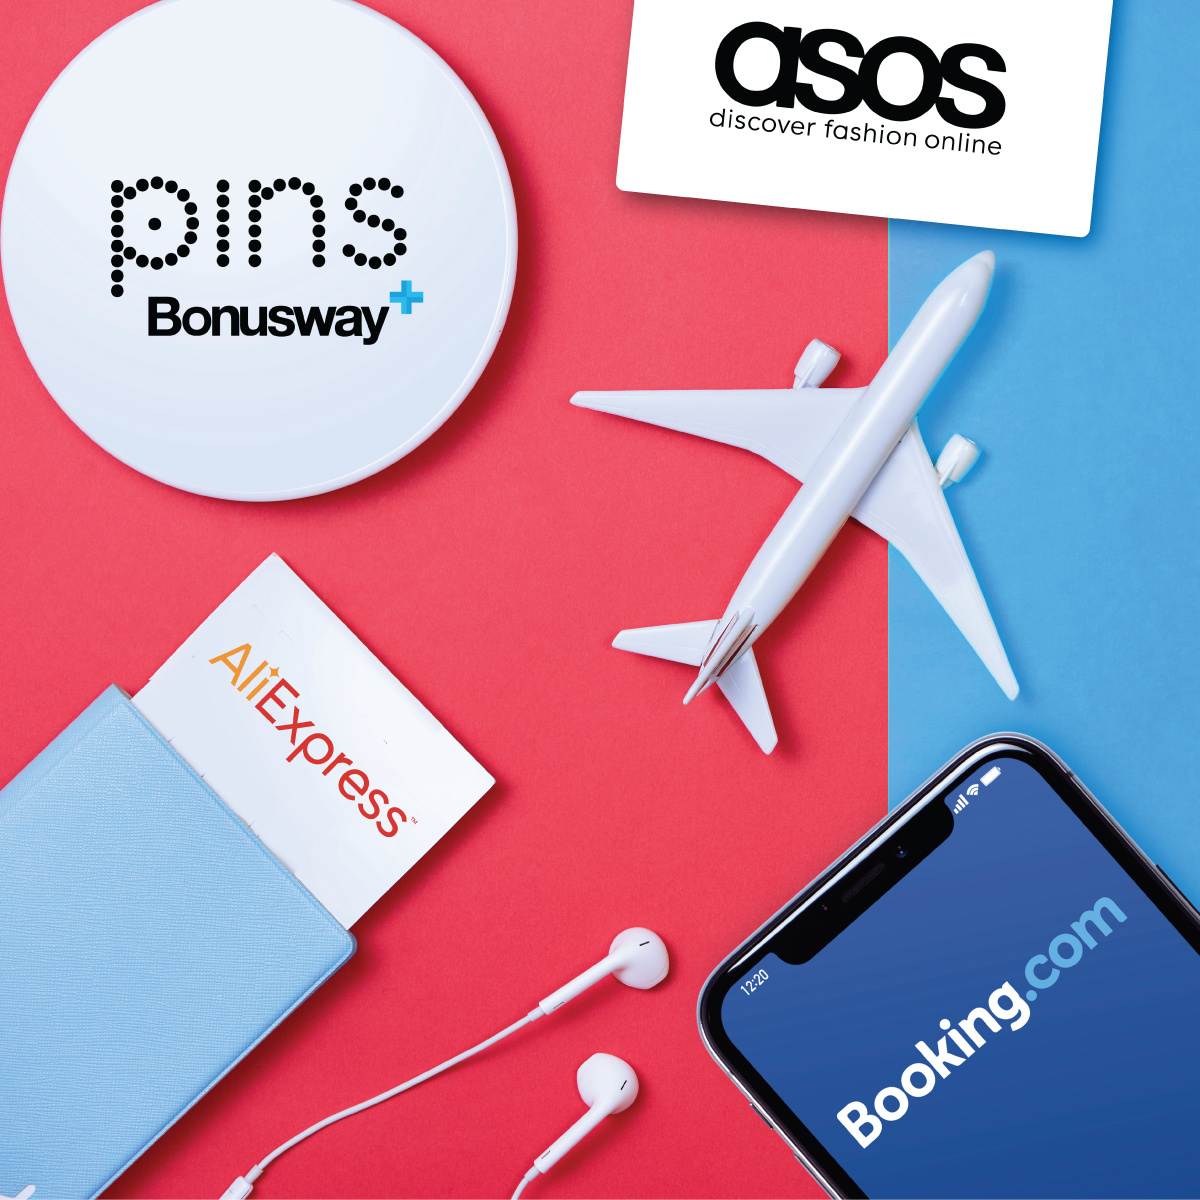 Book hotels or shop online through PINS Bonusway and earn PINS image